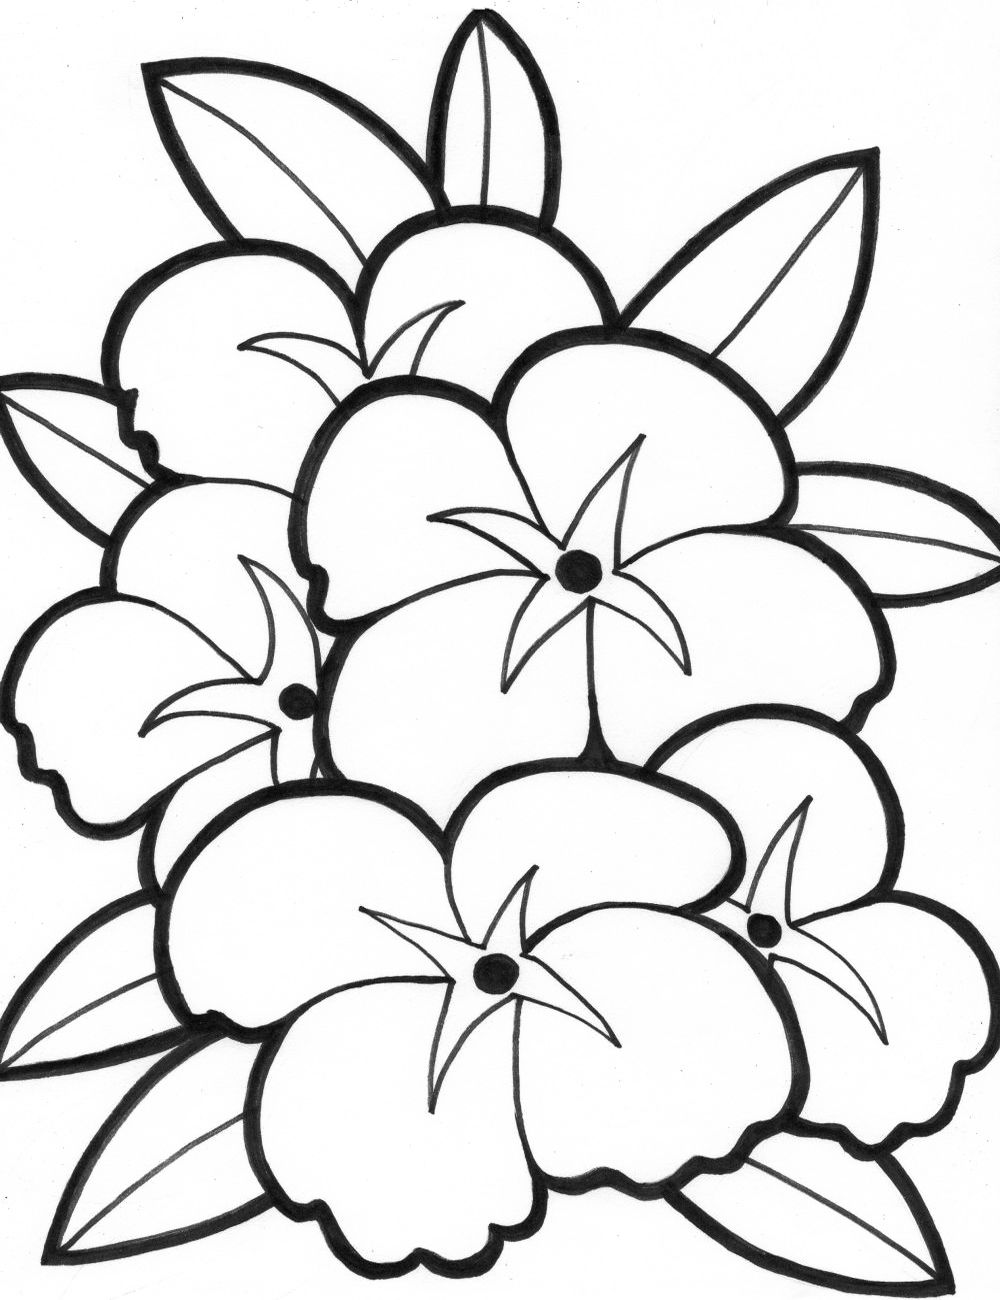 simple flower coloring pages Simple Flower Coloring Pages | Coloring   flowers | Coloring pages  simple flower coloring pages